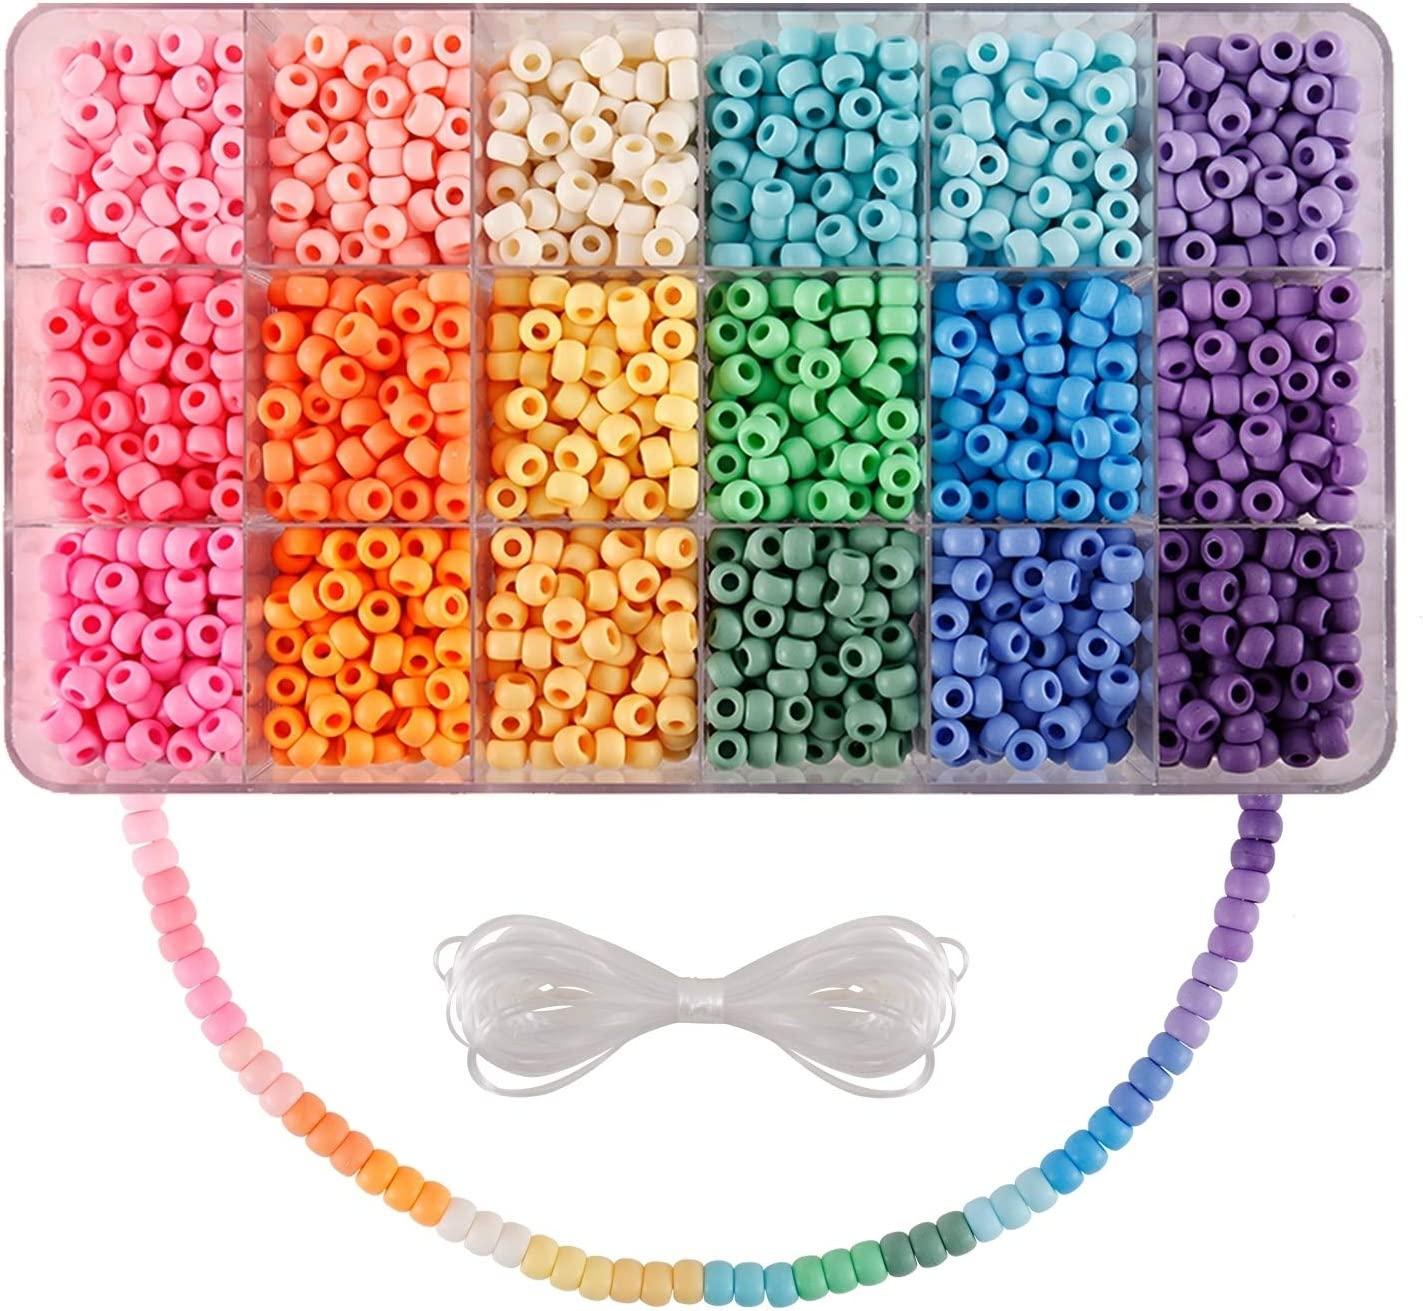 Pony Beads Opaque Multi Colored One Size Plastic Craft Pony Beads Assorted Bulk Variety Set with Storage Box for DIY Jewelry Bracelet Necklace Making